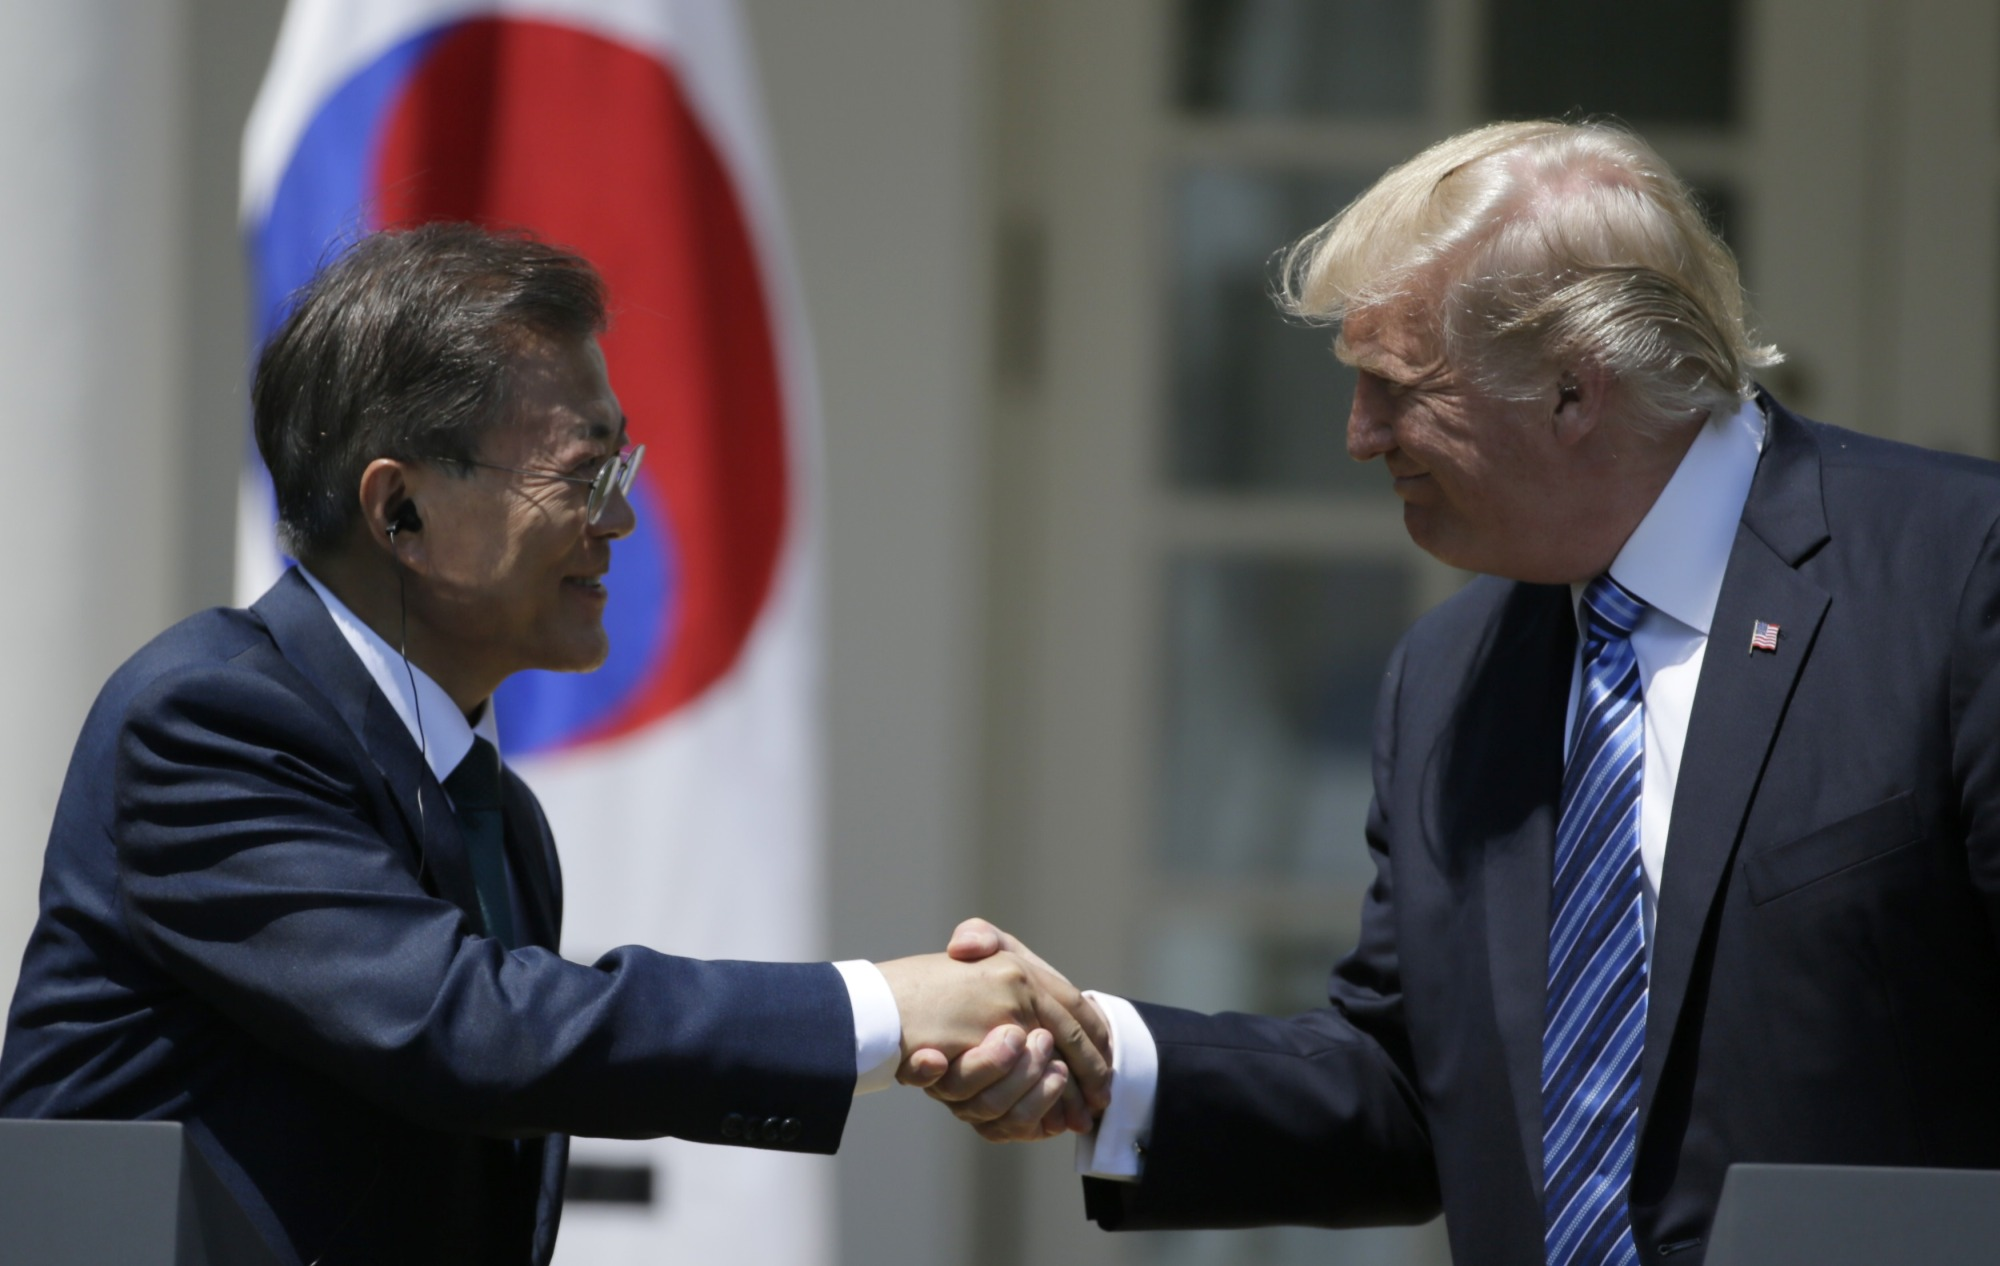 Trump's tweets include criticism of South Korea